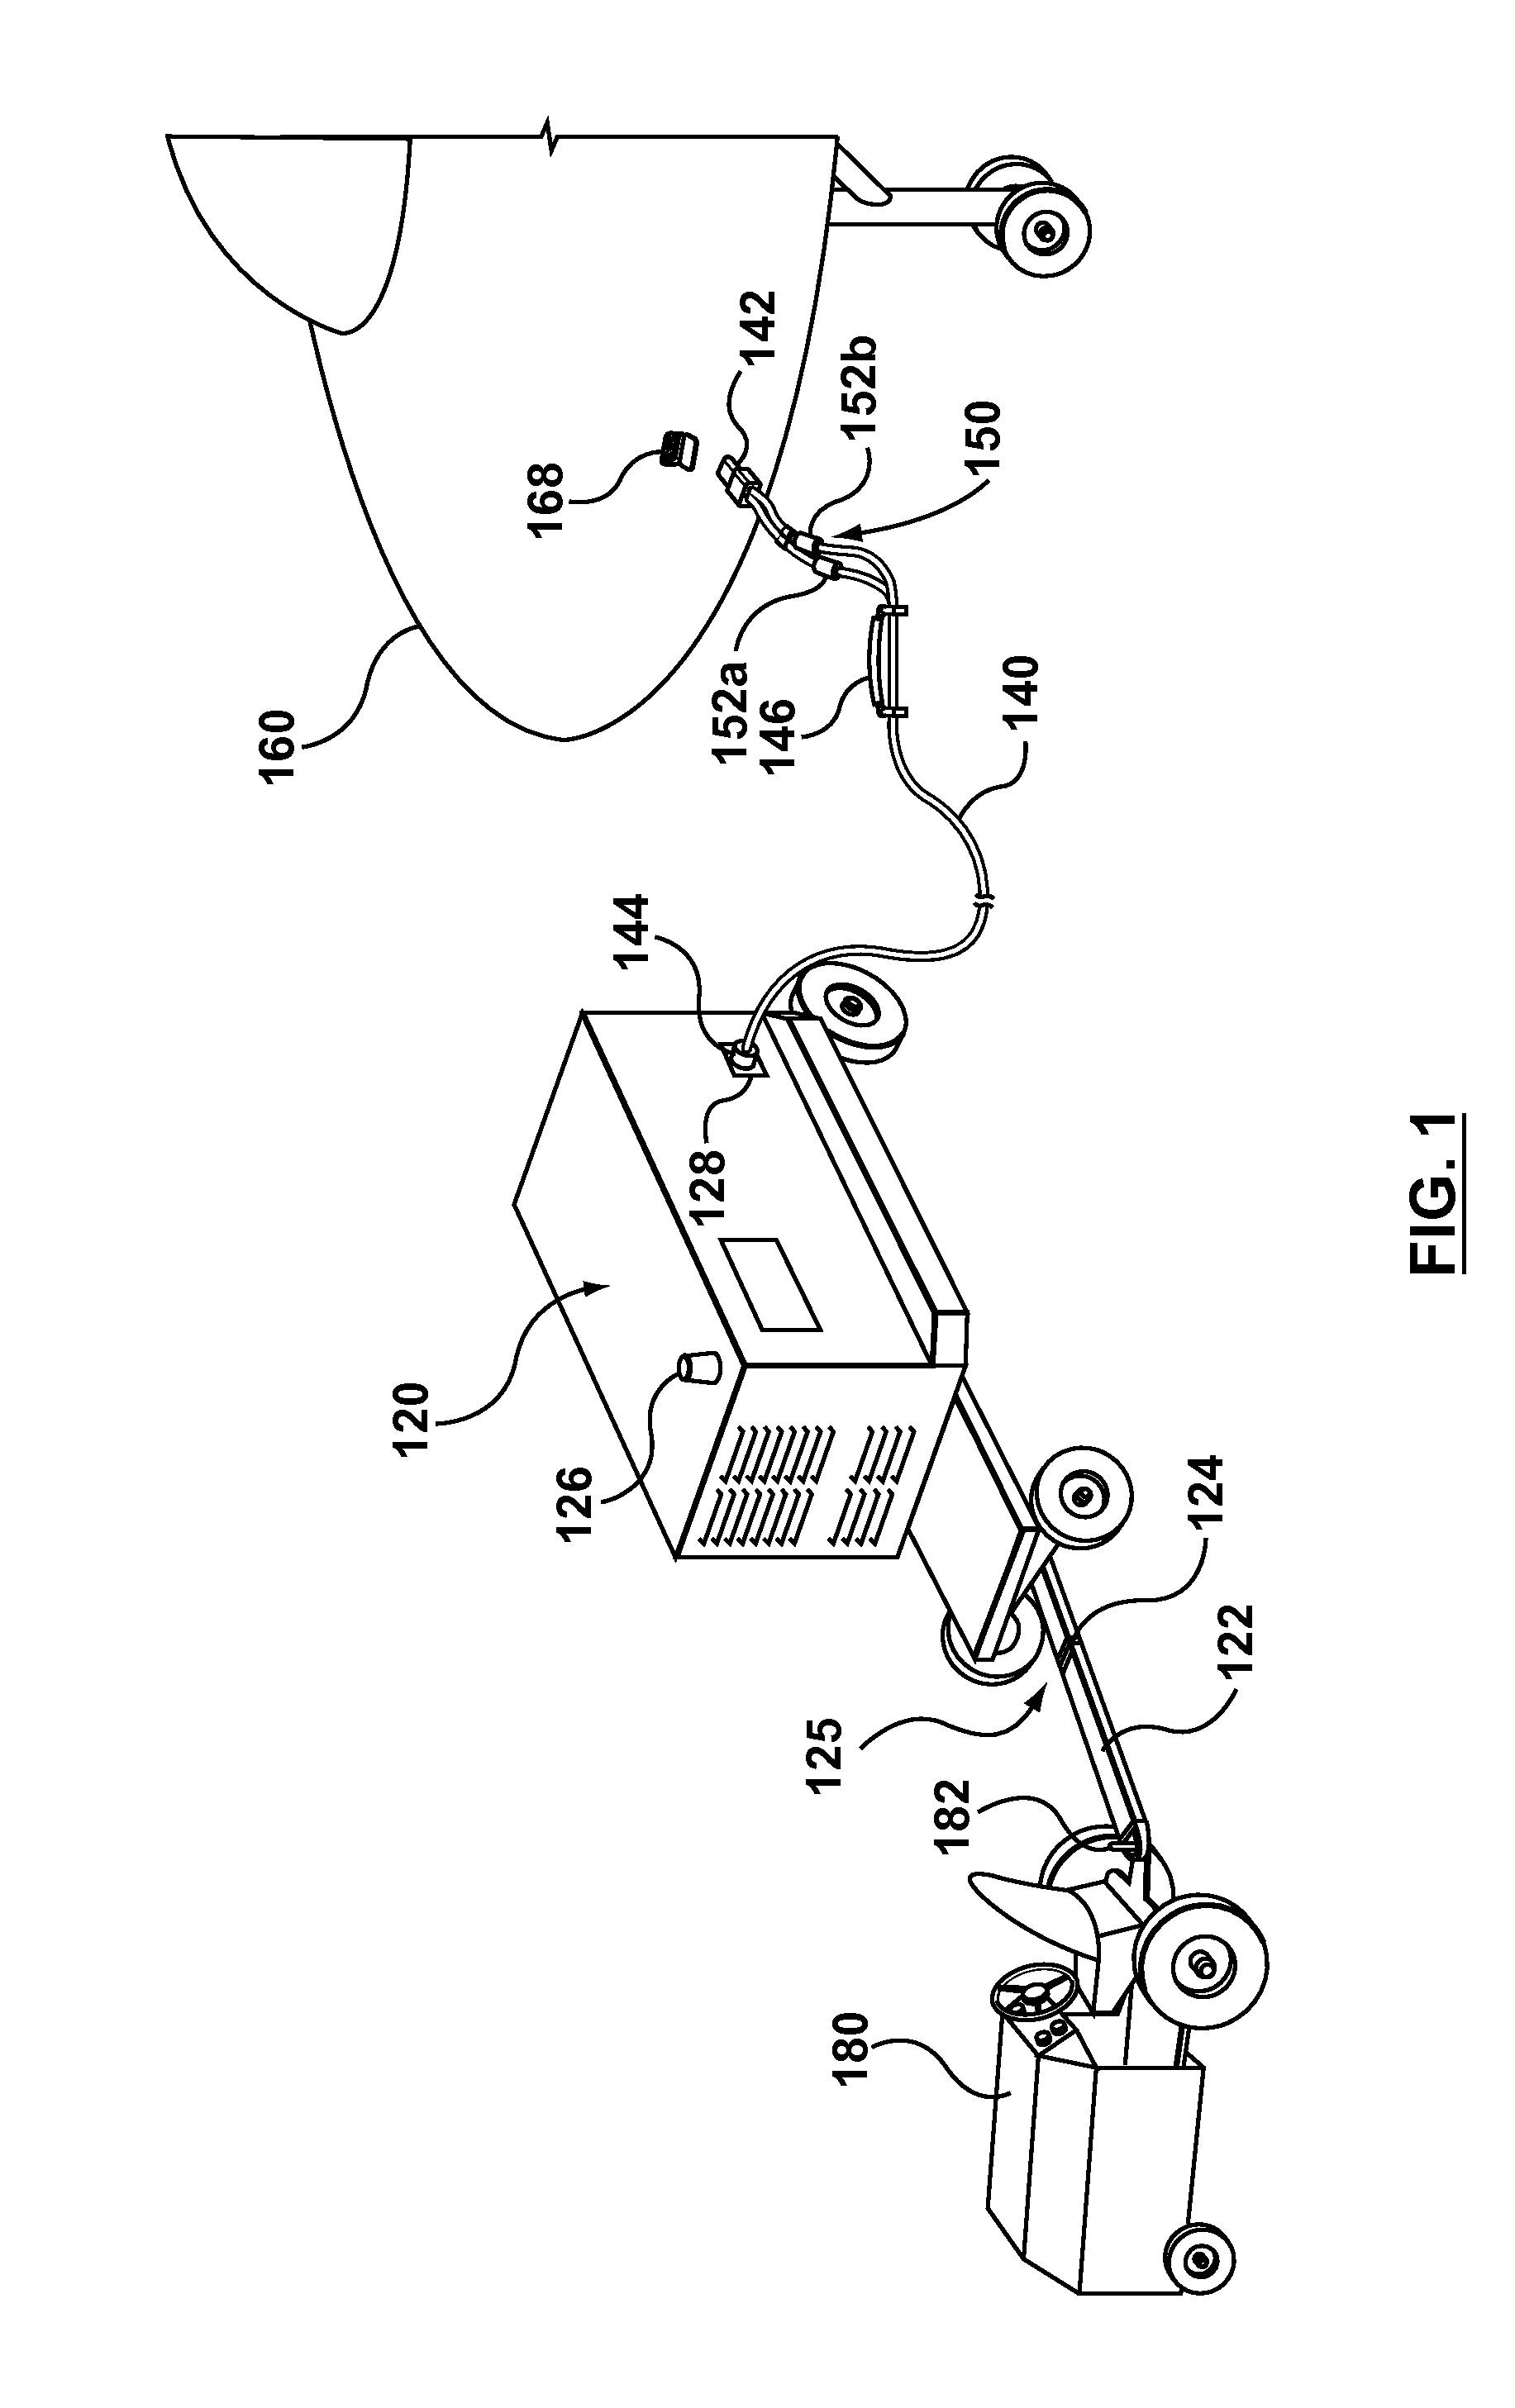 patent us20120309214 - aircraft power receptacle protection system